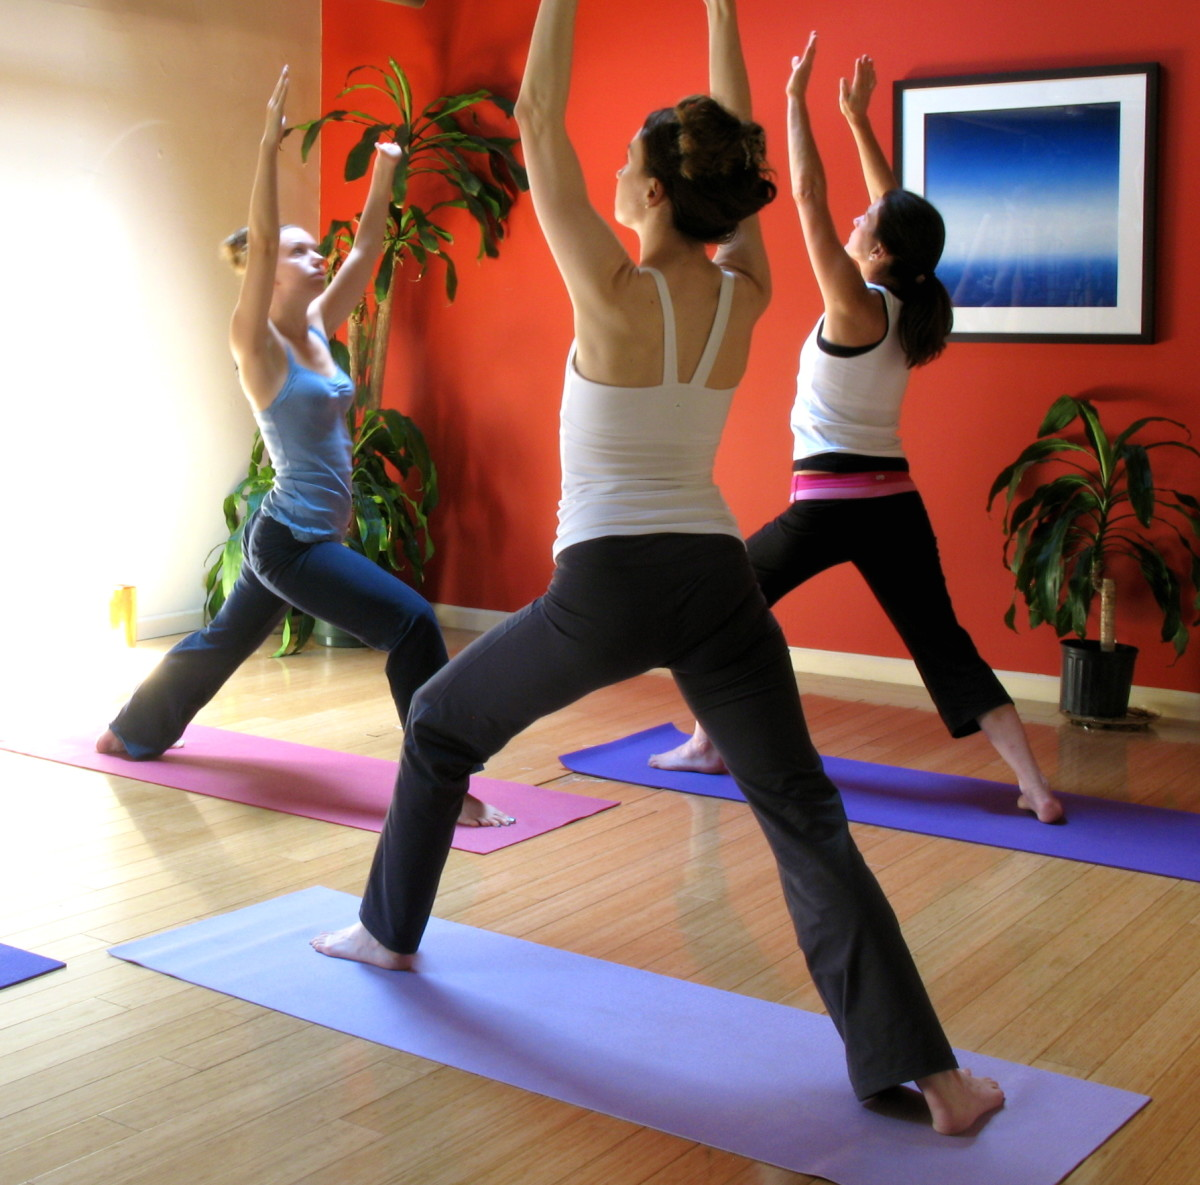 Gentle chest opening yoga exercises - good for costochondritis